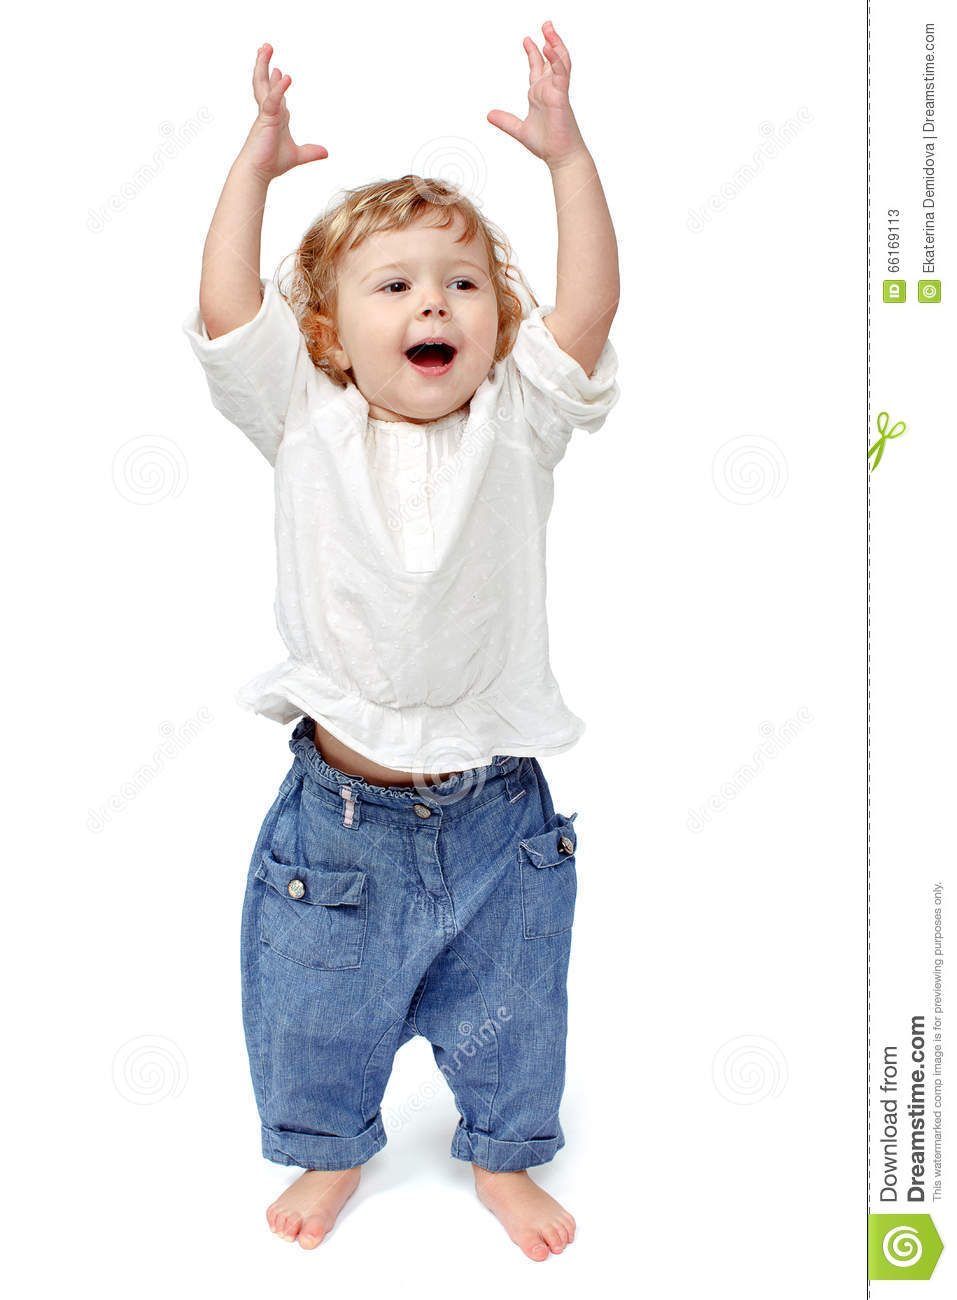 Young Baby Standing Indoors Applauding And Smiling Stock ...